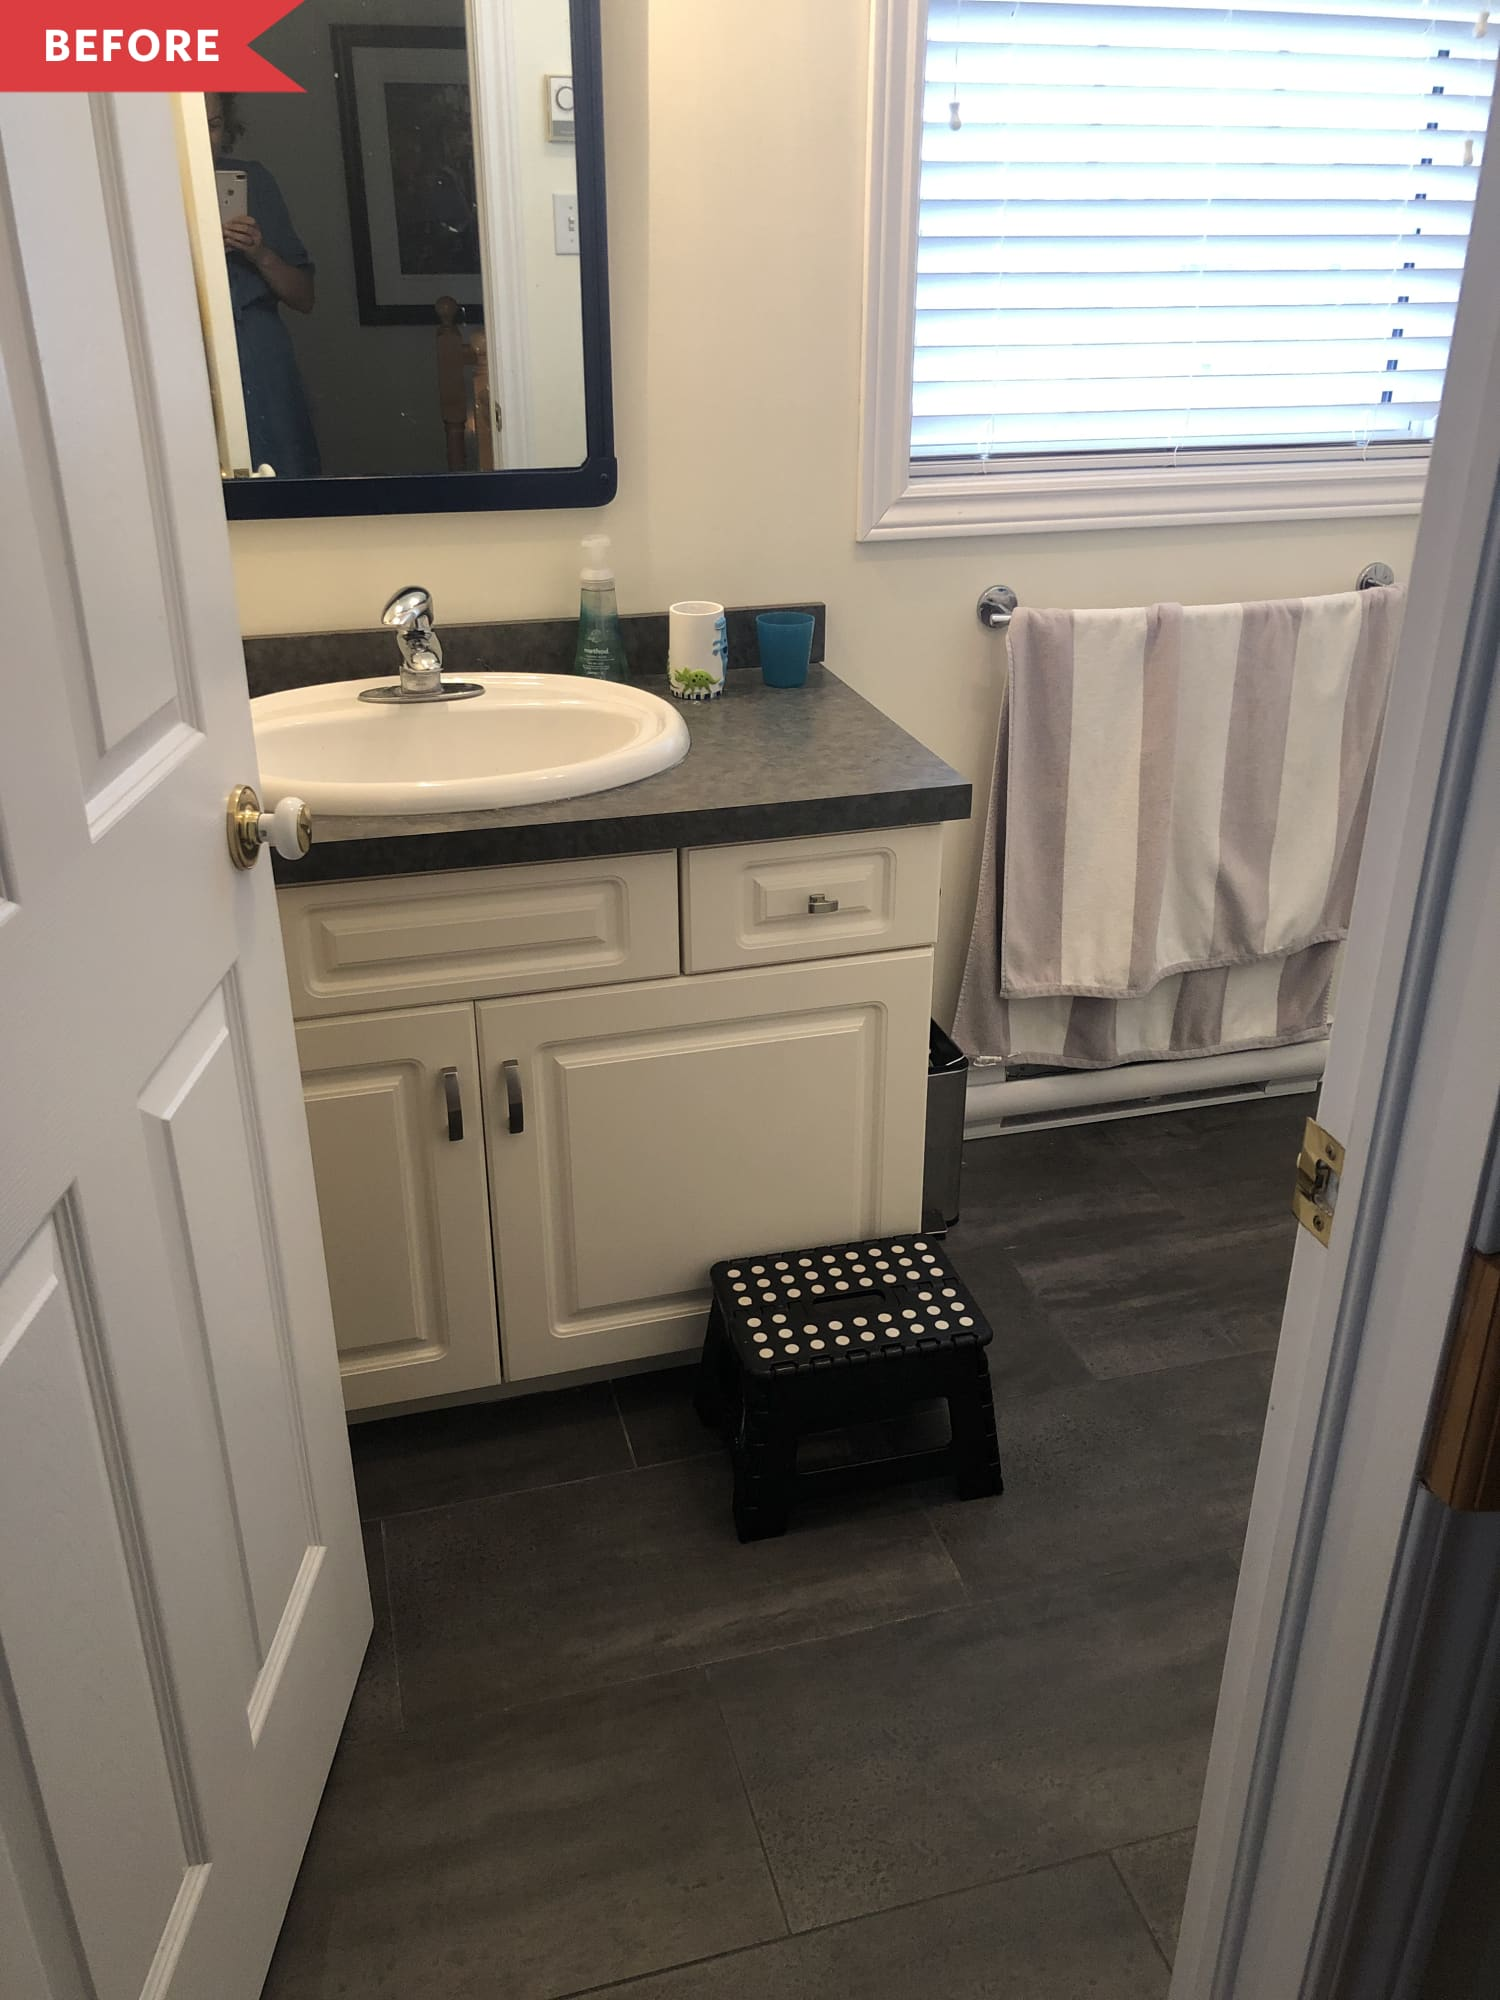 Before and After: This Bathroom Refresh Shows What $100 Can Really Do